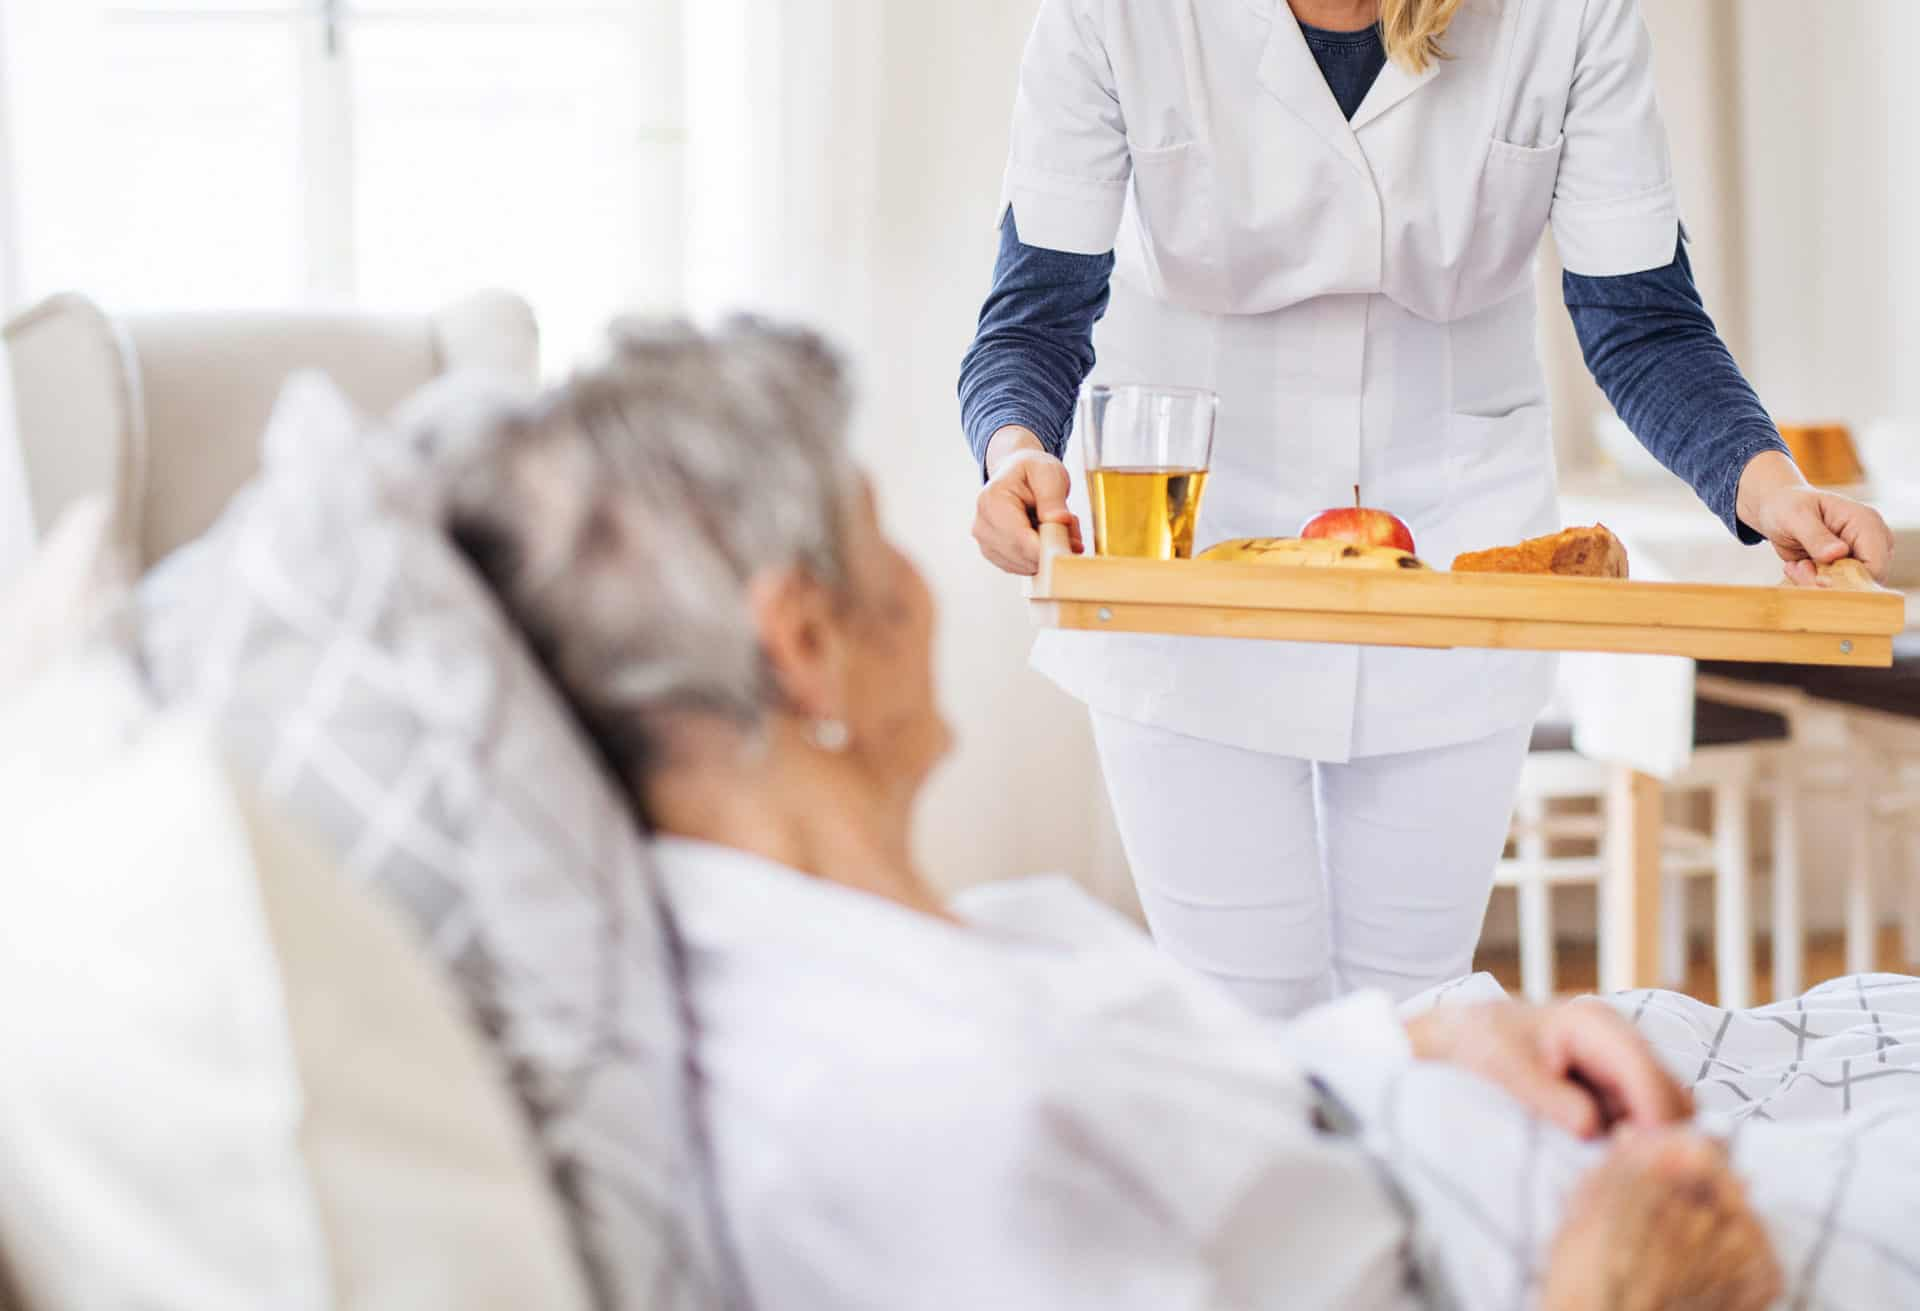 A caregiver bringing breakfast to a sick senior woman lying in bed.